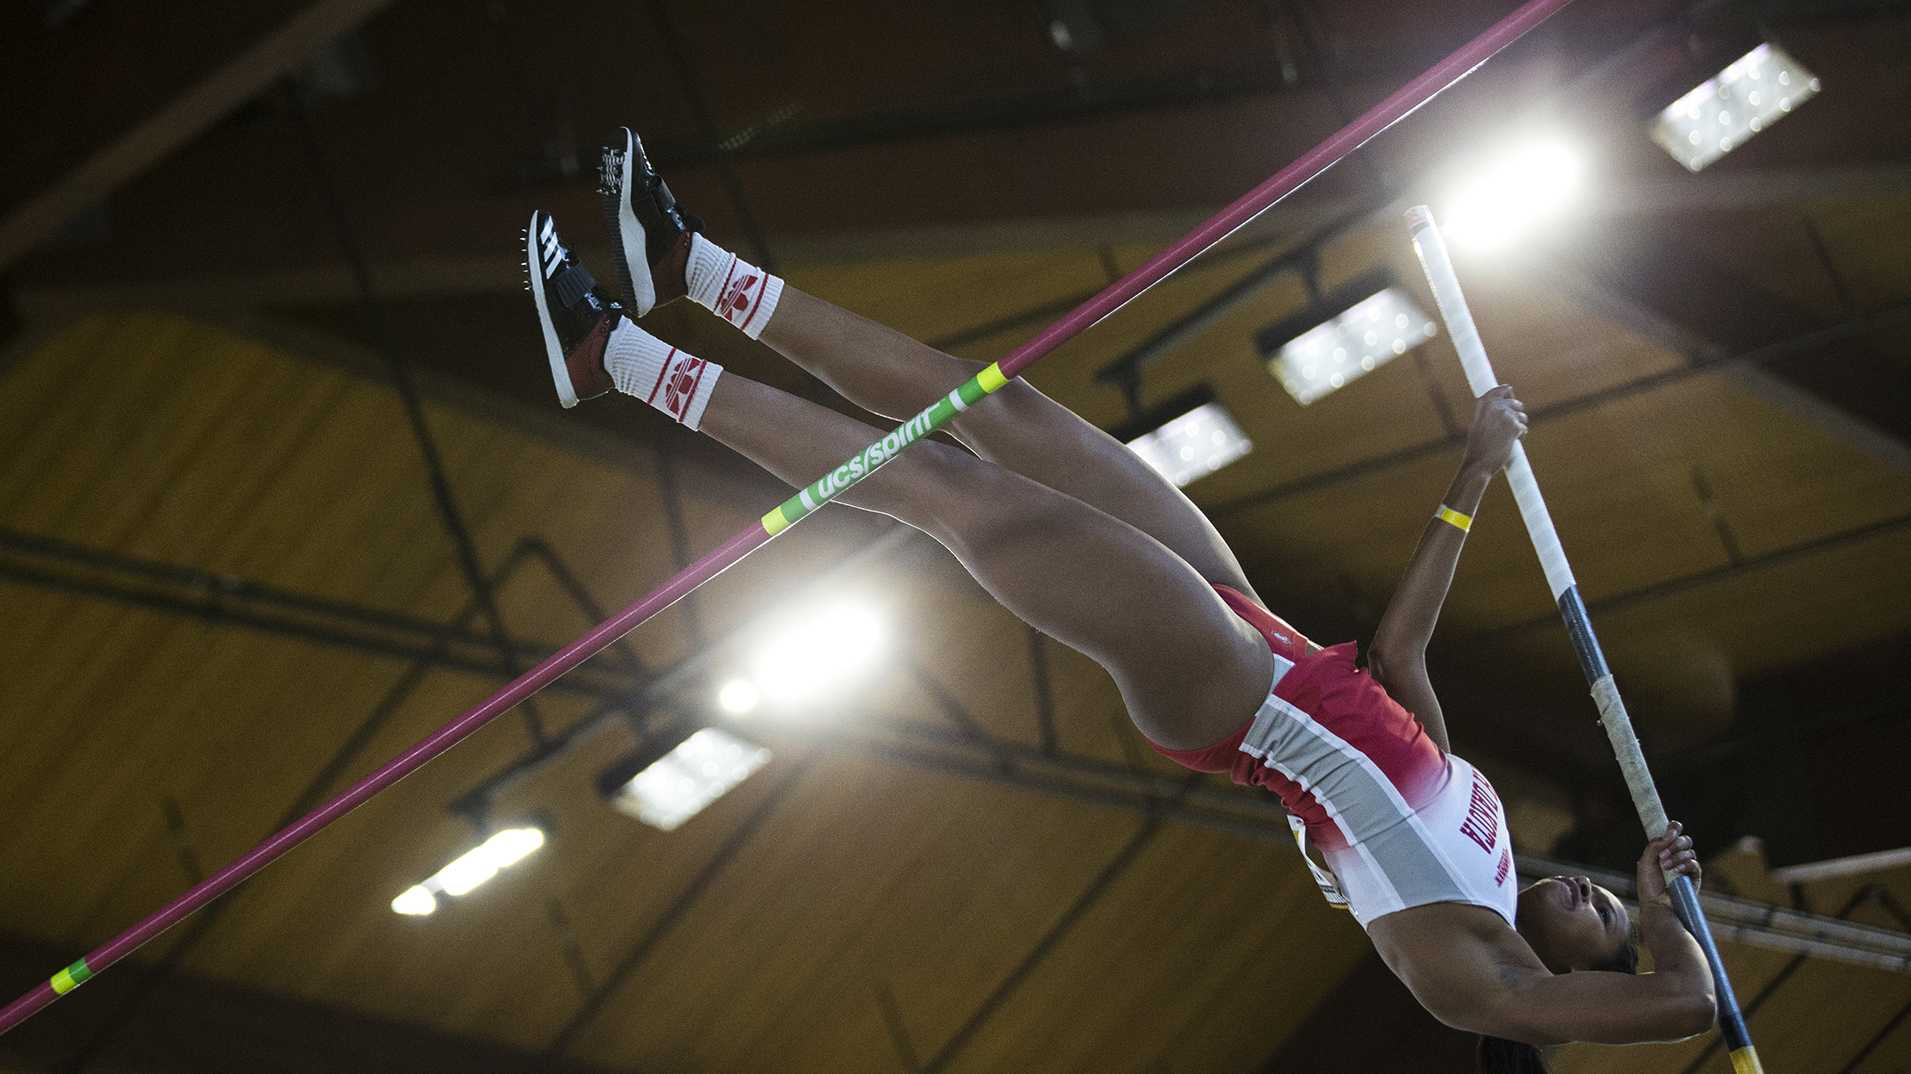 South Dakota sophomore Makiah Hunt attempts a pole vault during the Hawkeye Invitational indoor track meet at the Campus Recreation Building on Satuday, Jan. 13, 2017.  Hunt finished second in the Women's Pole Vault at 3.90 meters. The Hawkeyes opened up the season with over 11 titles for the day. (Ben Allan Smith/The Daily Iowan)